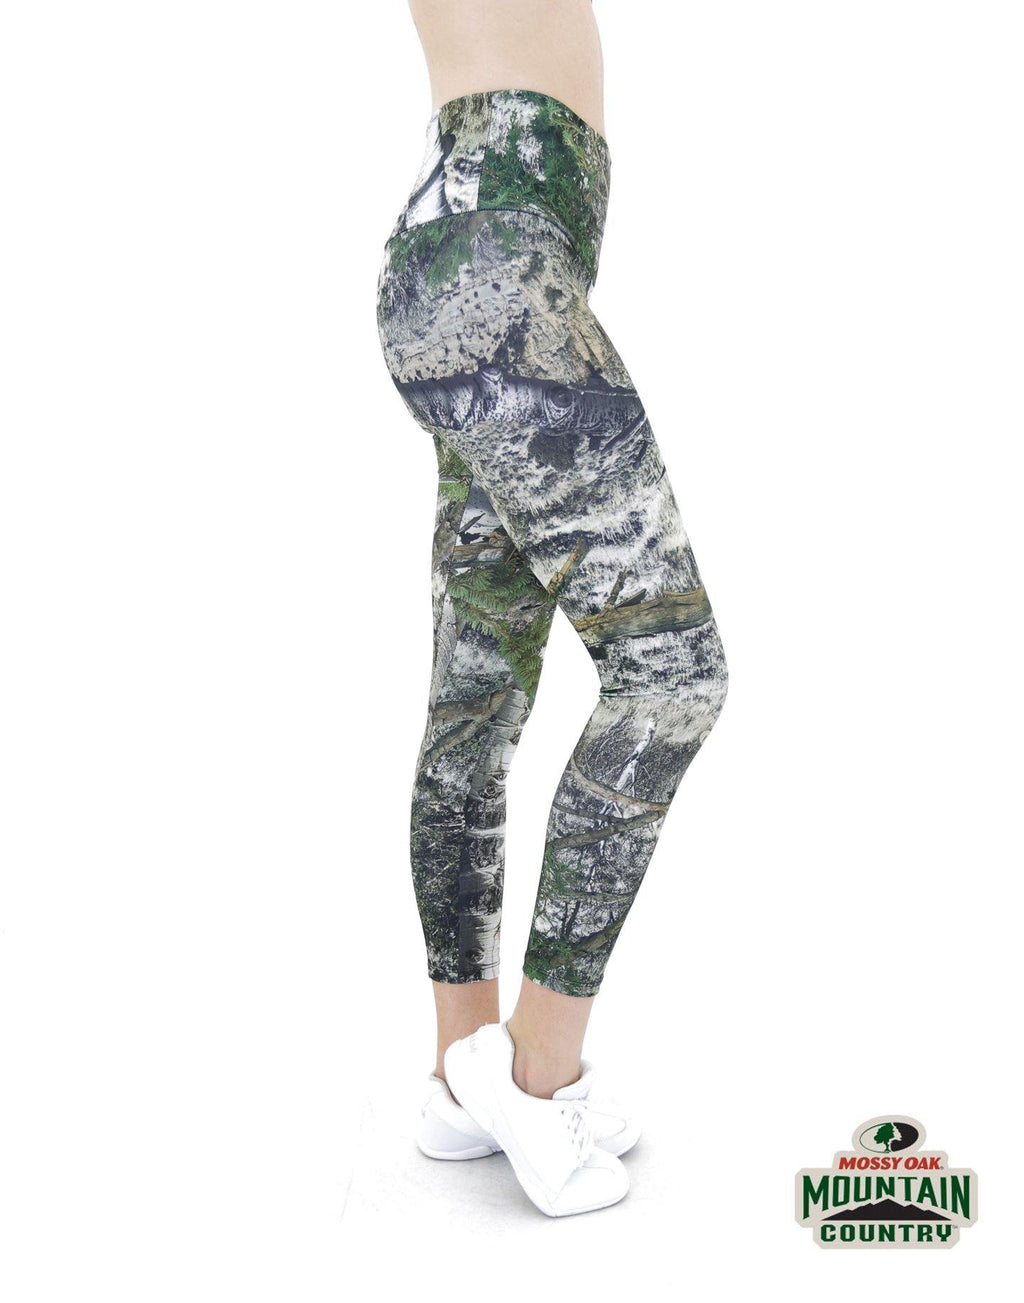 Apsara Leggings High Waist Cropped, Mossy Oak Mountain Country